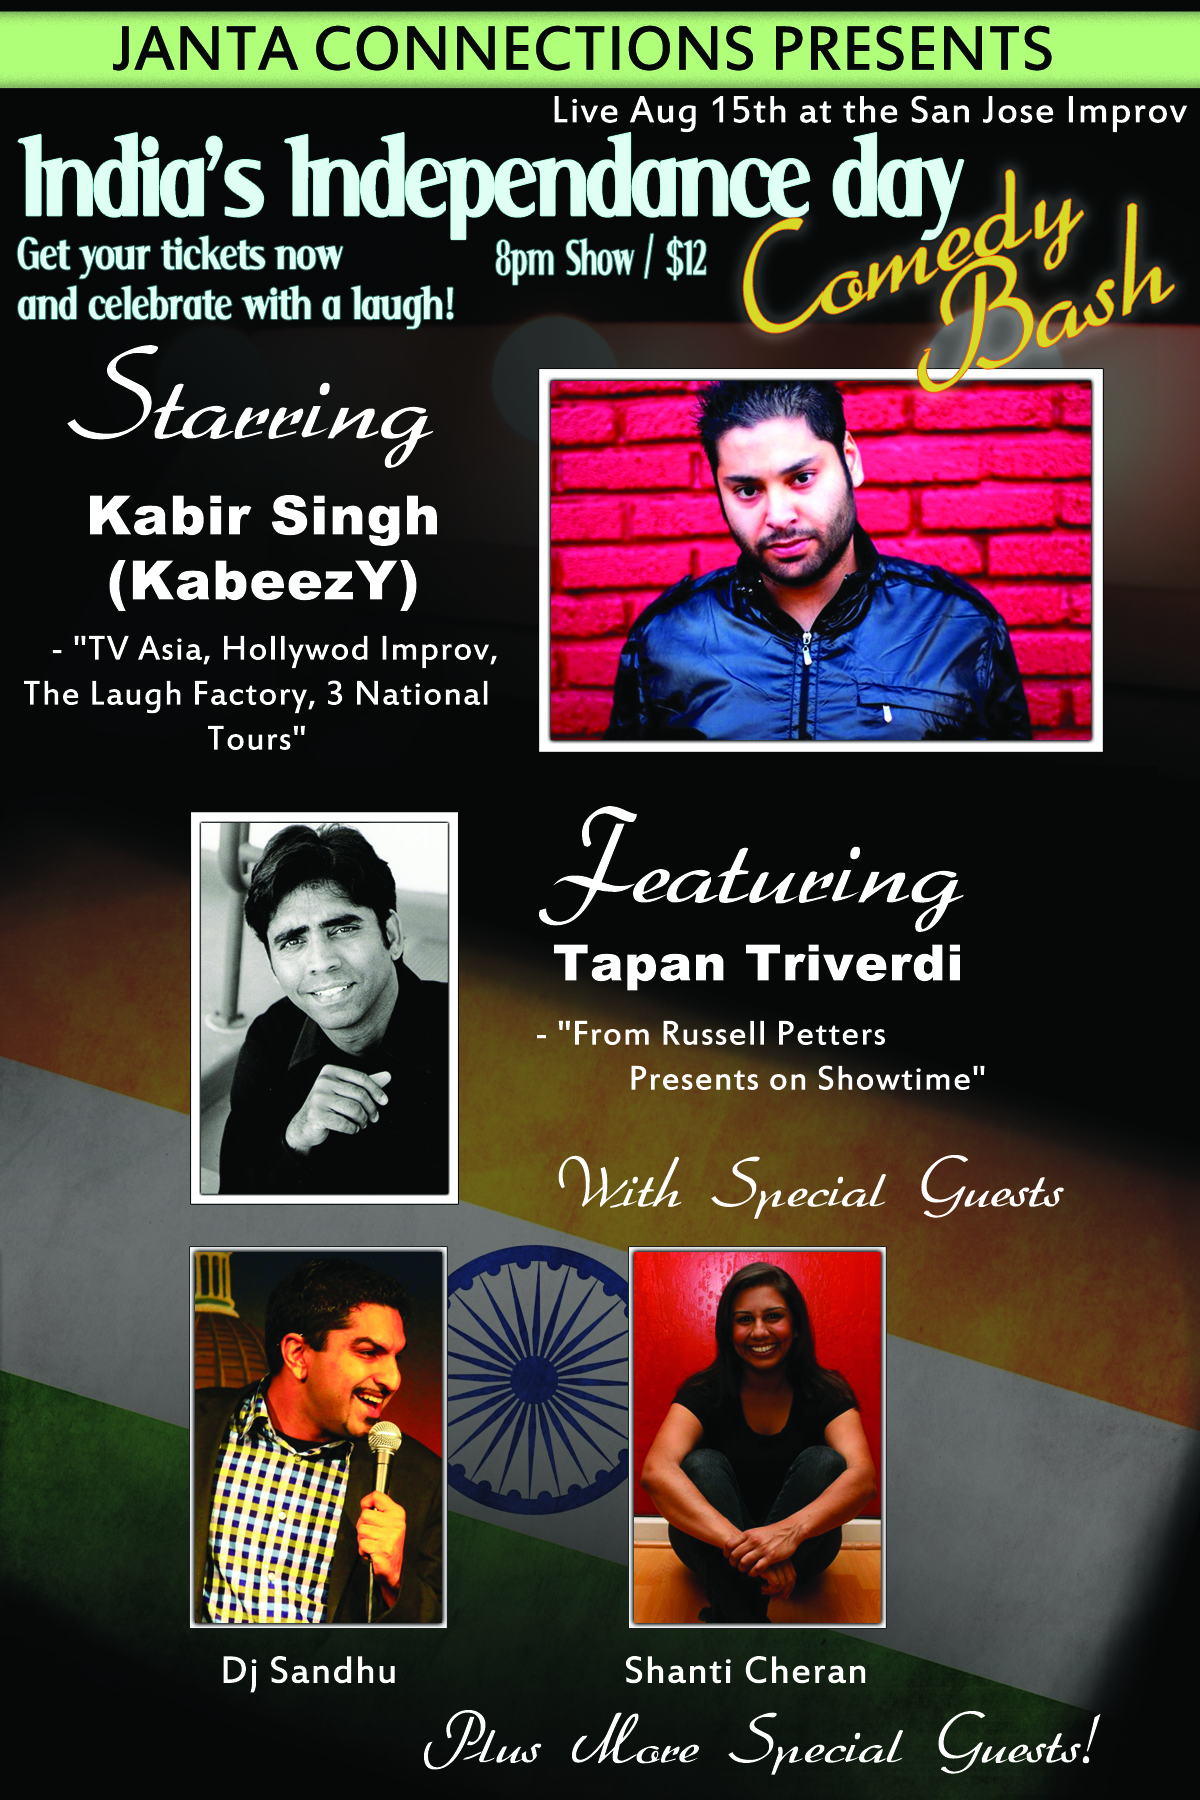 Indias Independence Day Comedy Bash